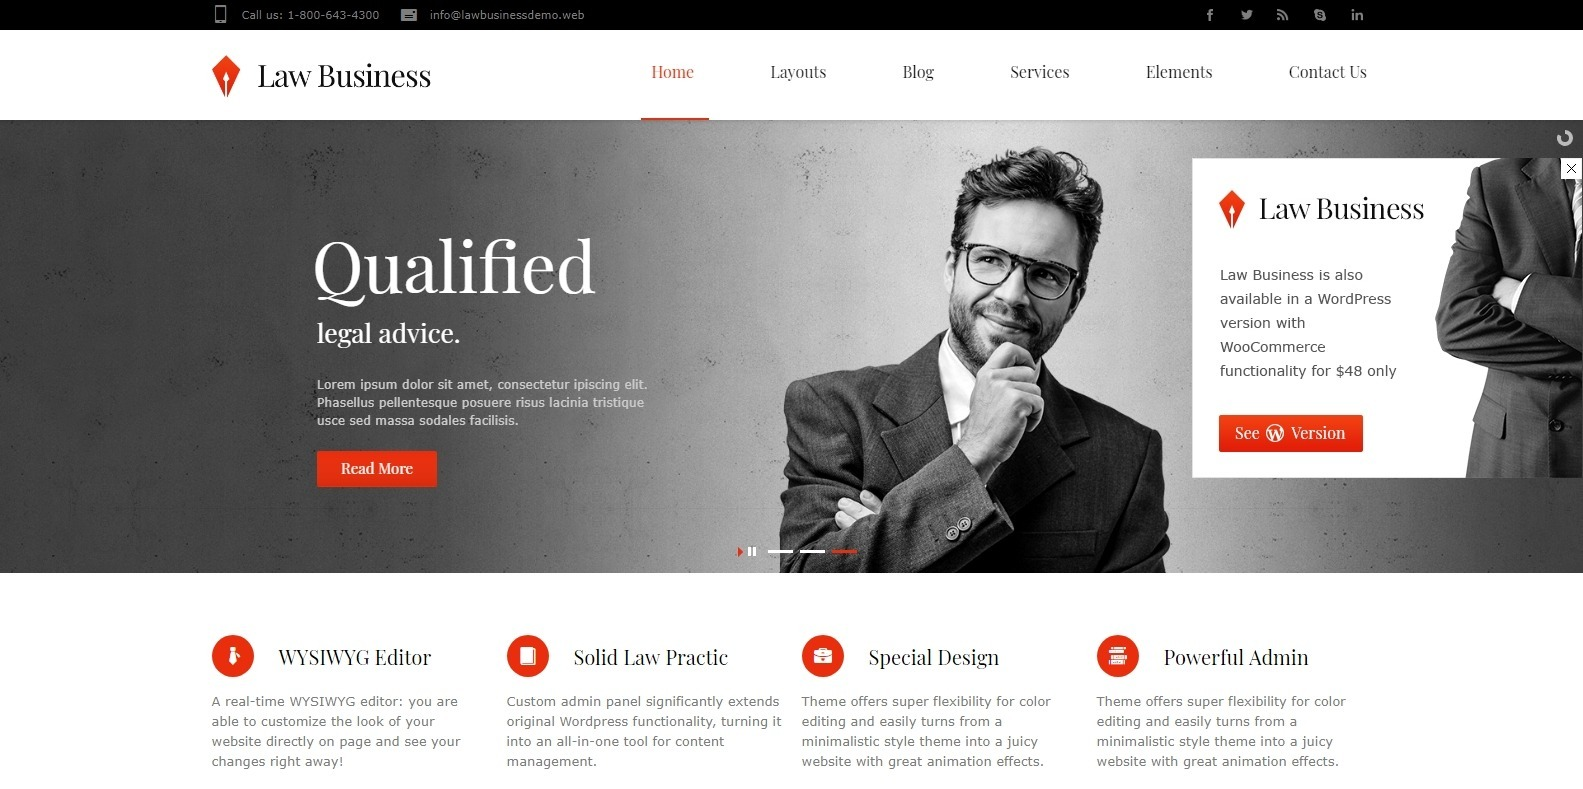 lawbusiness-consulting-website-template